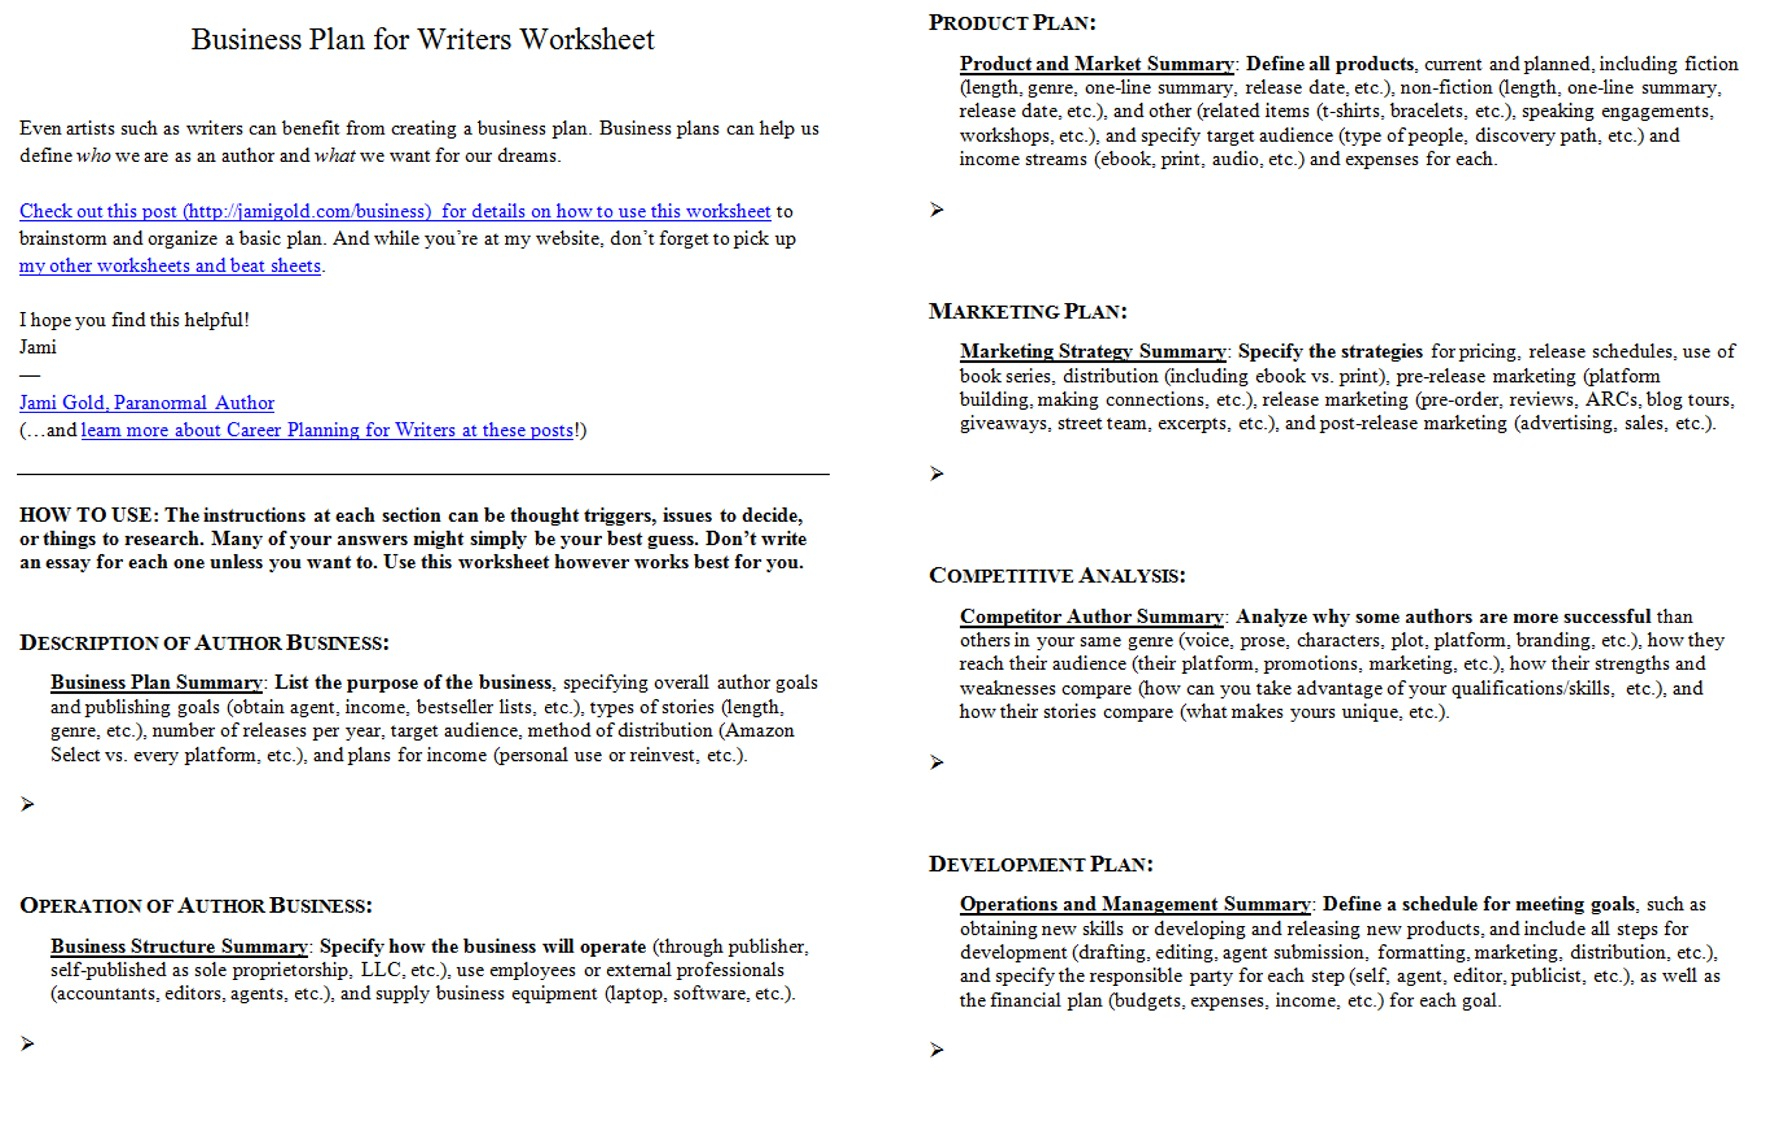 Weirdmailus  Terrific Worksheets For Writers  Jami Gold Paranormal Author With Exciting Screen Shot Of Both Pages Of The Business Plan For Writers Worksheet With Delectable Family Worksheets For Grade  Also Math Worksheets Generator Free Printables In Addition Article Practice Worksheets And Following Simple Directions Worksheets As Well As Adjectives Worksheets For Grade  Additionally Battleships Worksheet From Jamigoldcom With Weirdmailus  Exciting Worksheets For Writers  Jami Gold Paranormal Author With Delectable Screen Shot Of Both Pages Of The Business Plan For Writers Worksheet And Terrific Family Worksheets For Grade  Also Math Worksheets Generator Free Printables In Addition Article Practice Worksheets From Jamigoldcom